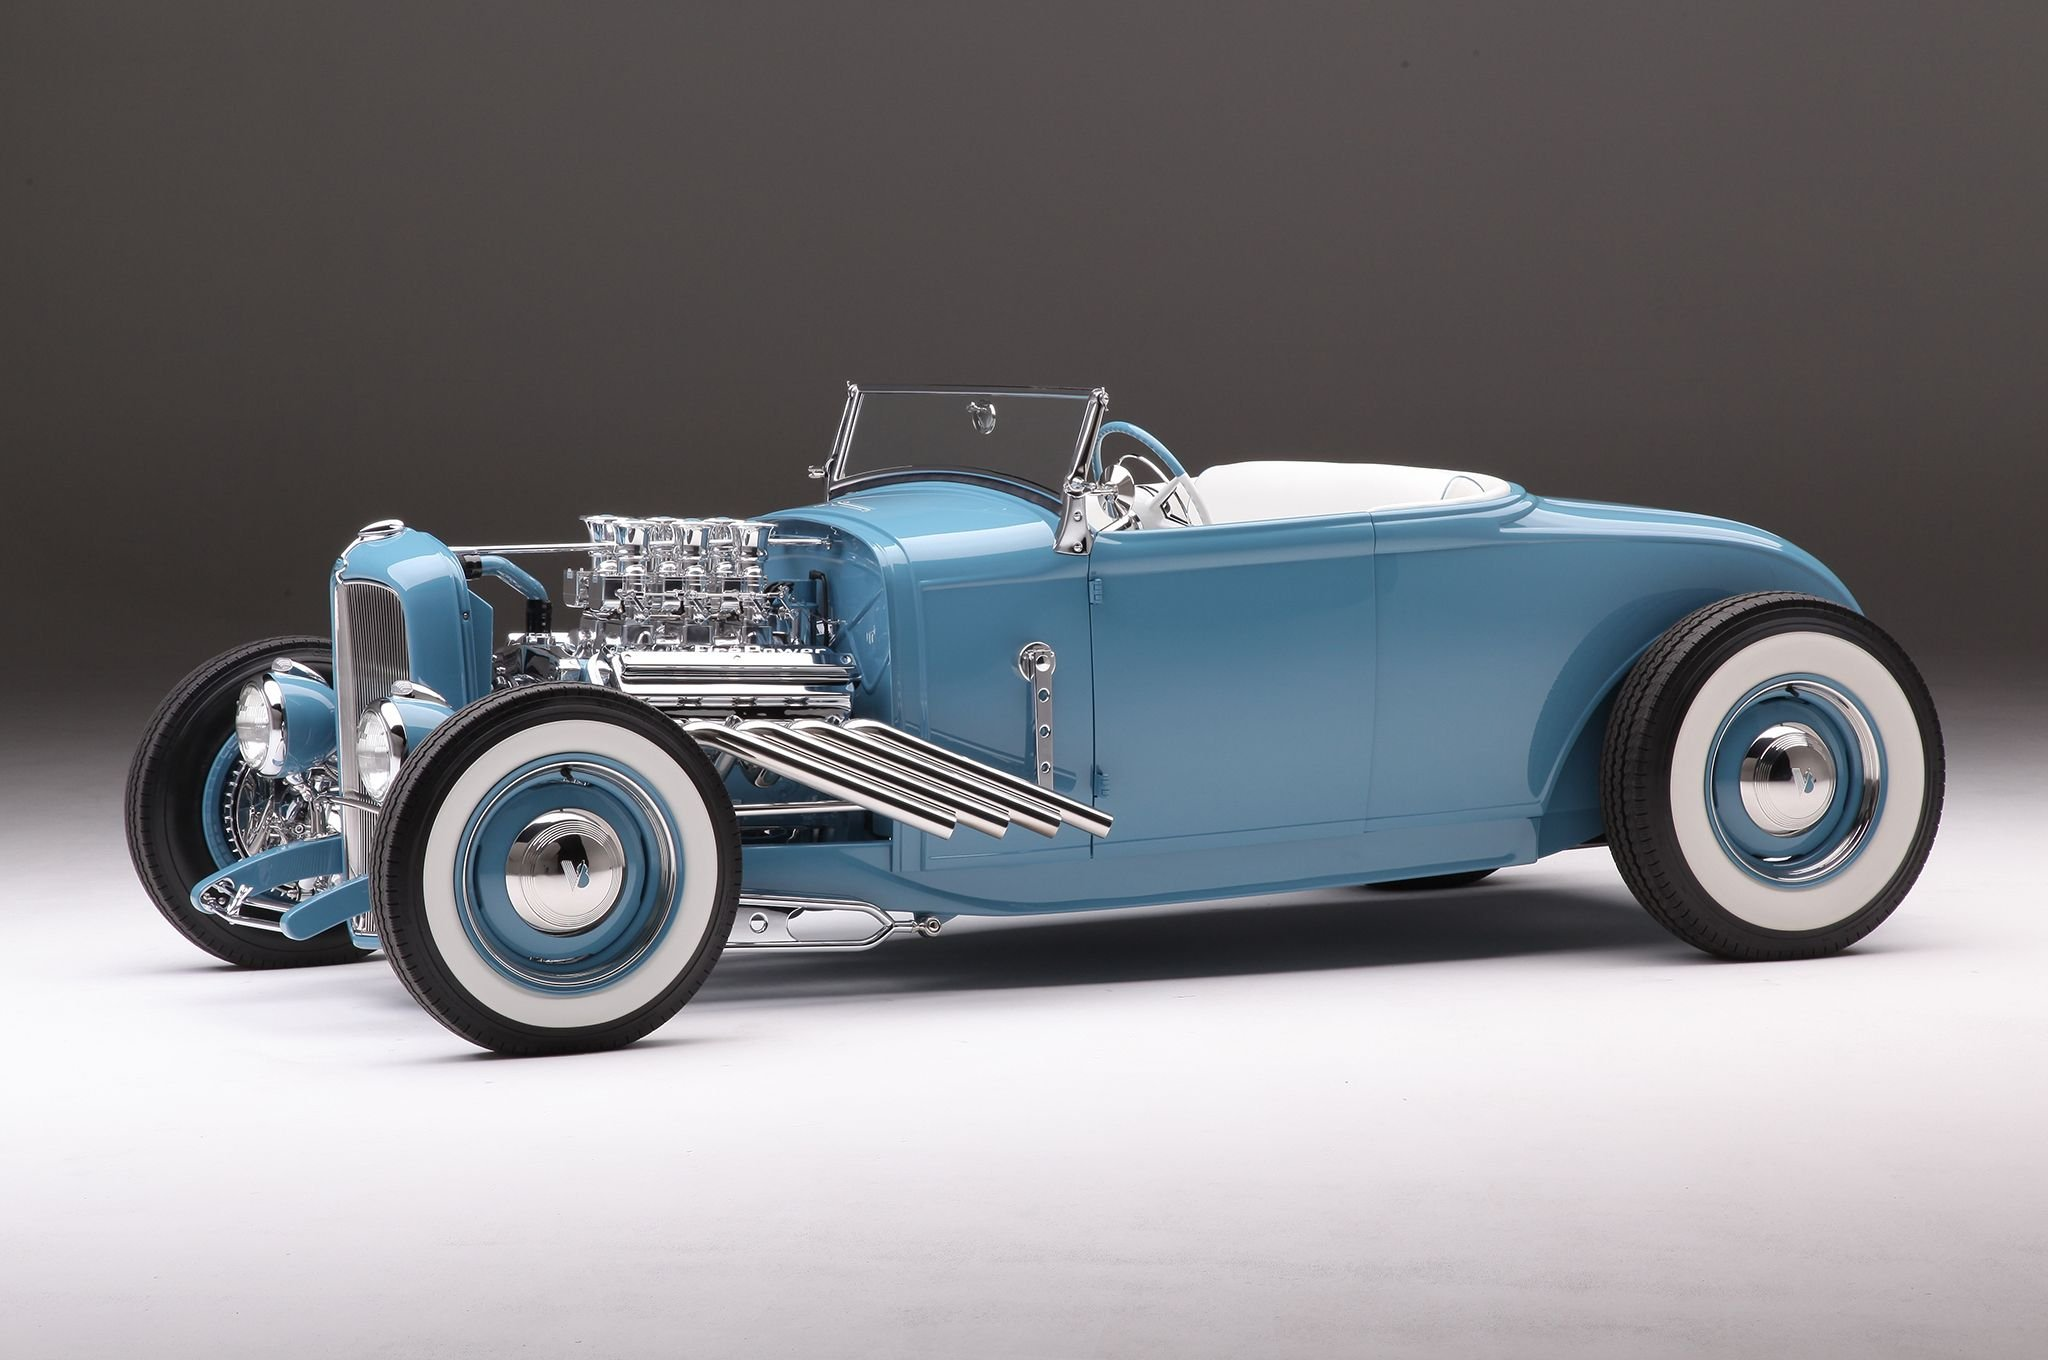 2016 Ford Cars >> 1931 Ford Roadster hot rod cars blue classis wallpaper | 2048x1360 | 927713 | WallpaperUP